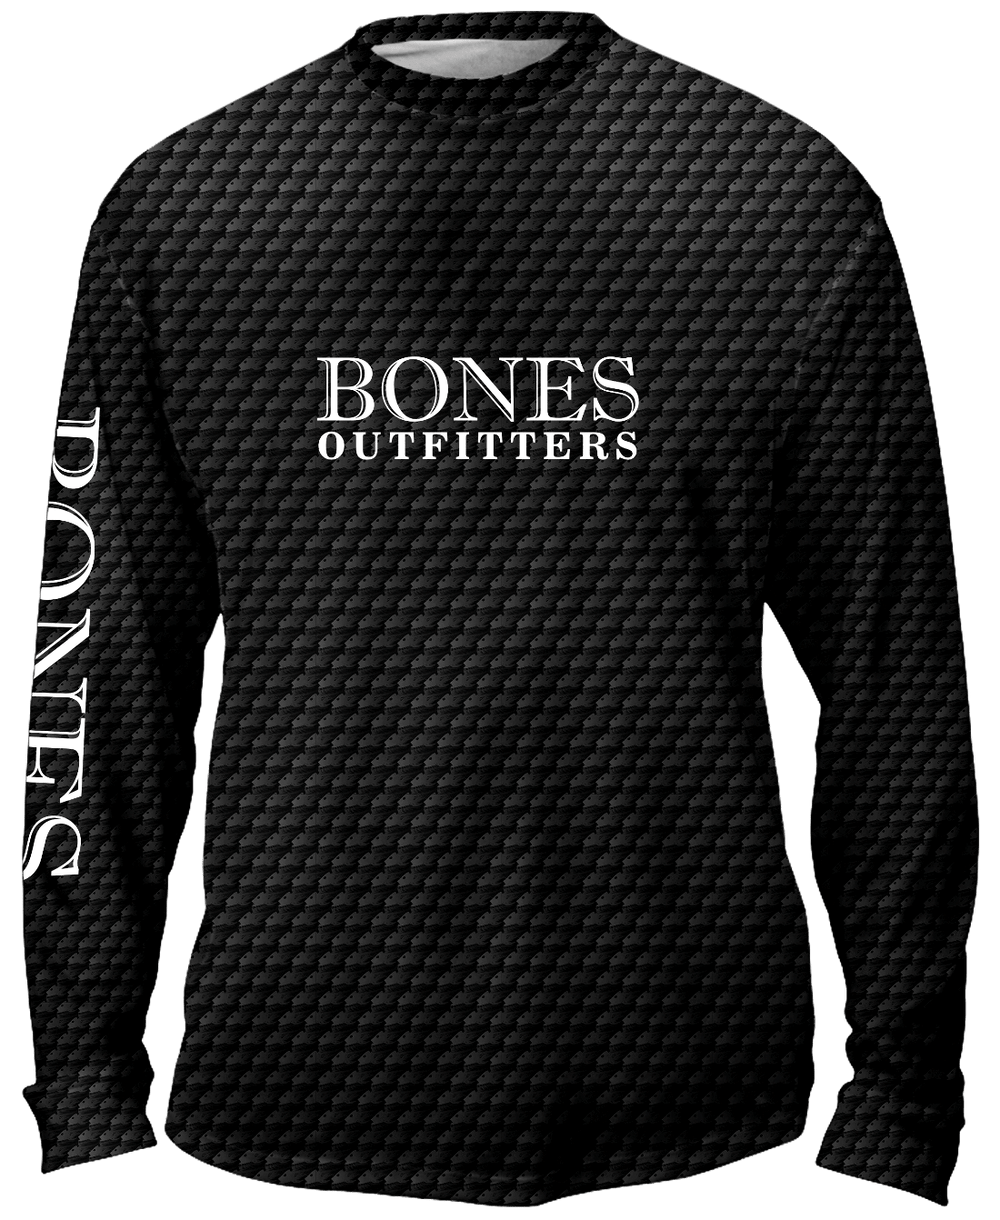 Bones Outfitters Logo Long Sleeve - Bones Outfitters